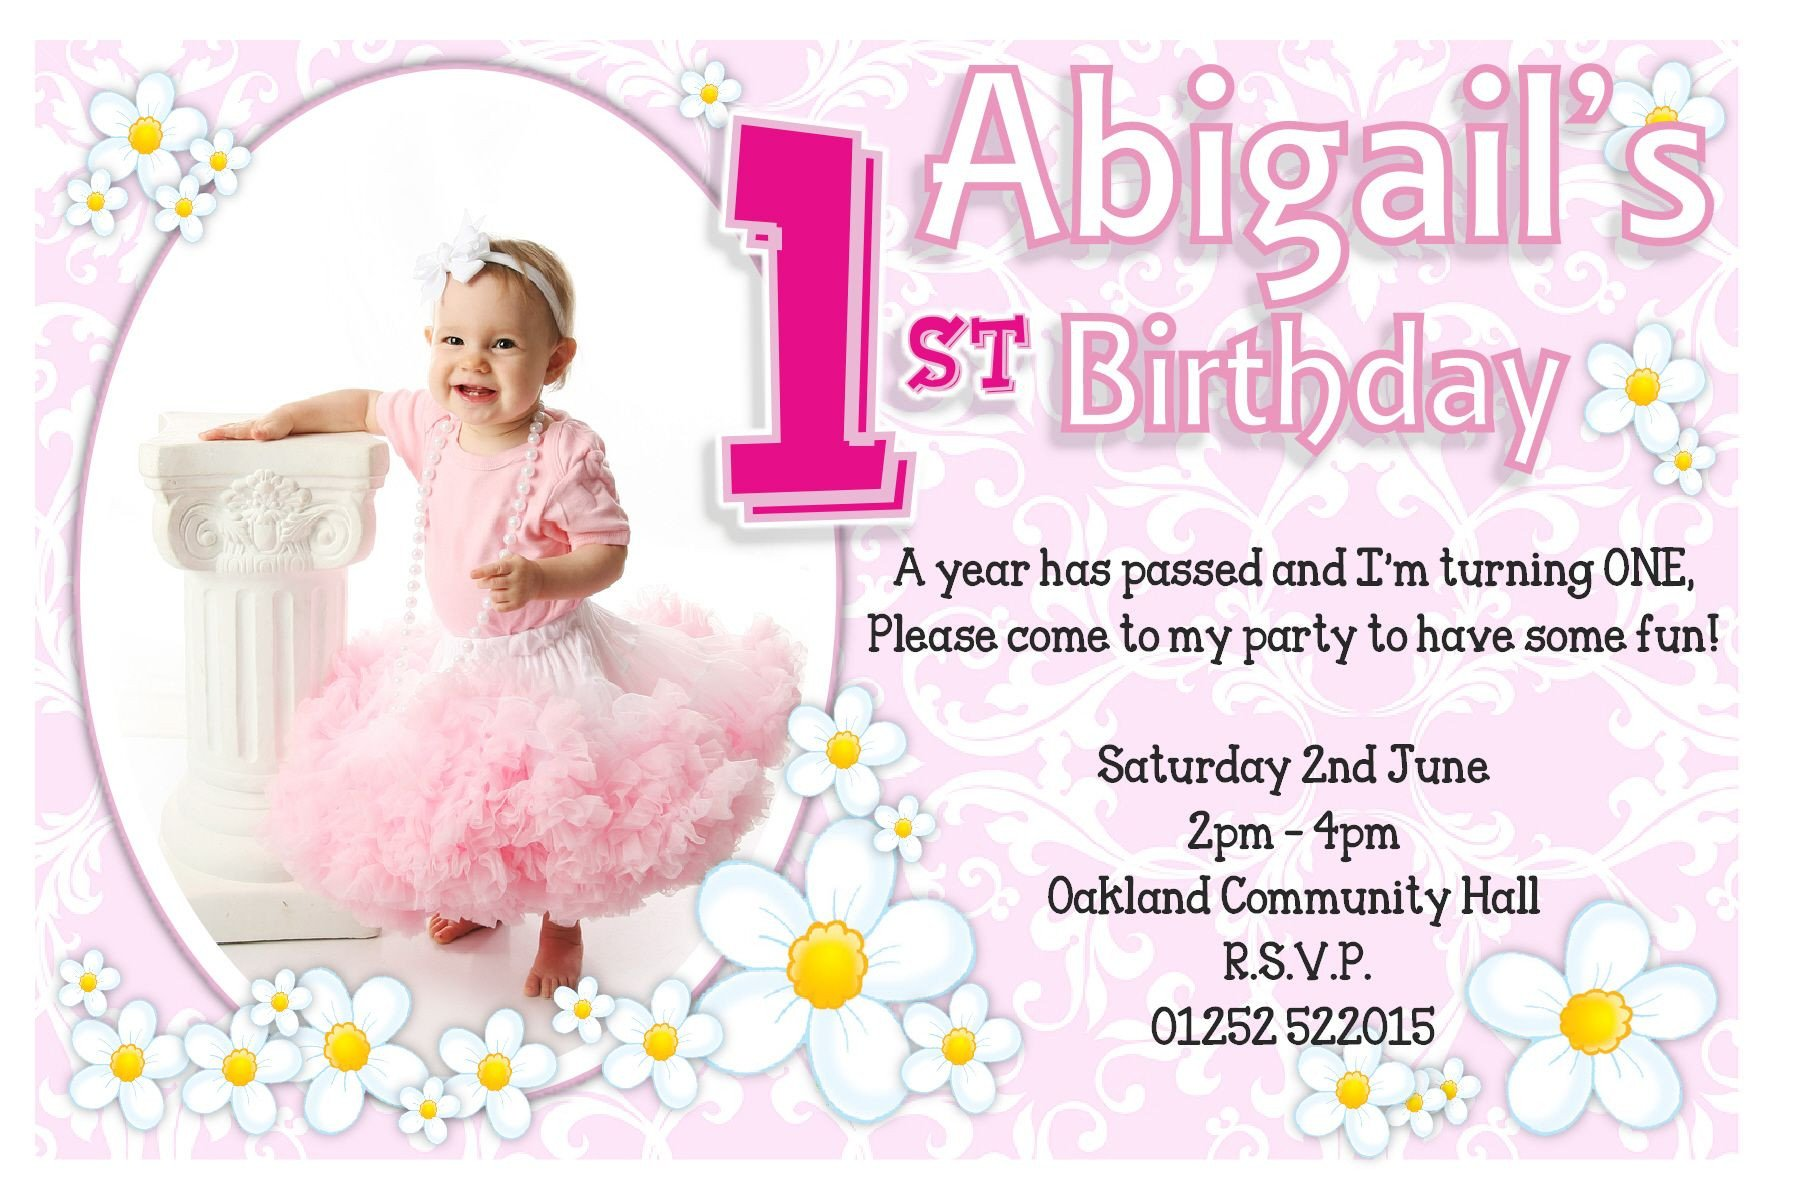 1st Birthday Invitation Template 1st Birthday Invitations Girl Free Template 1st Birthday